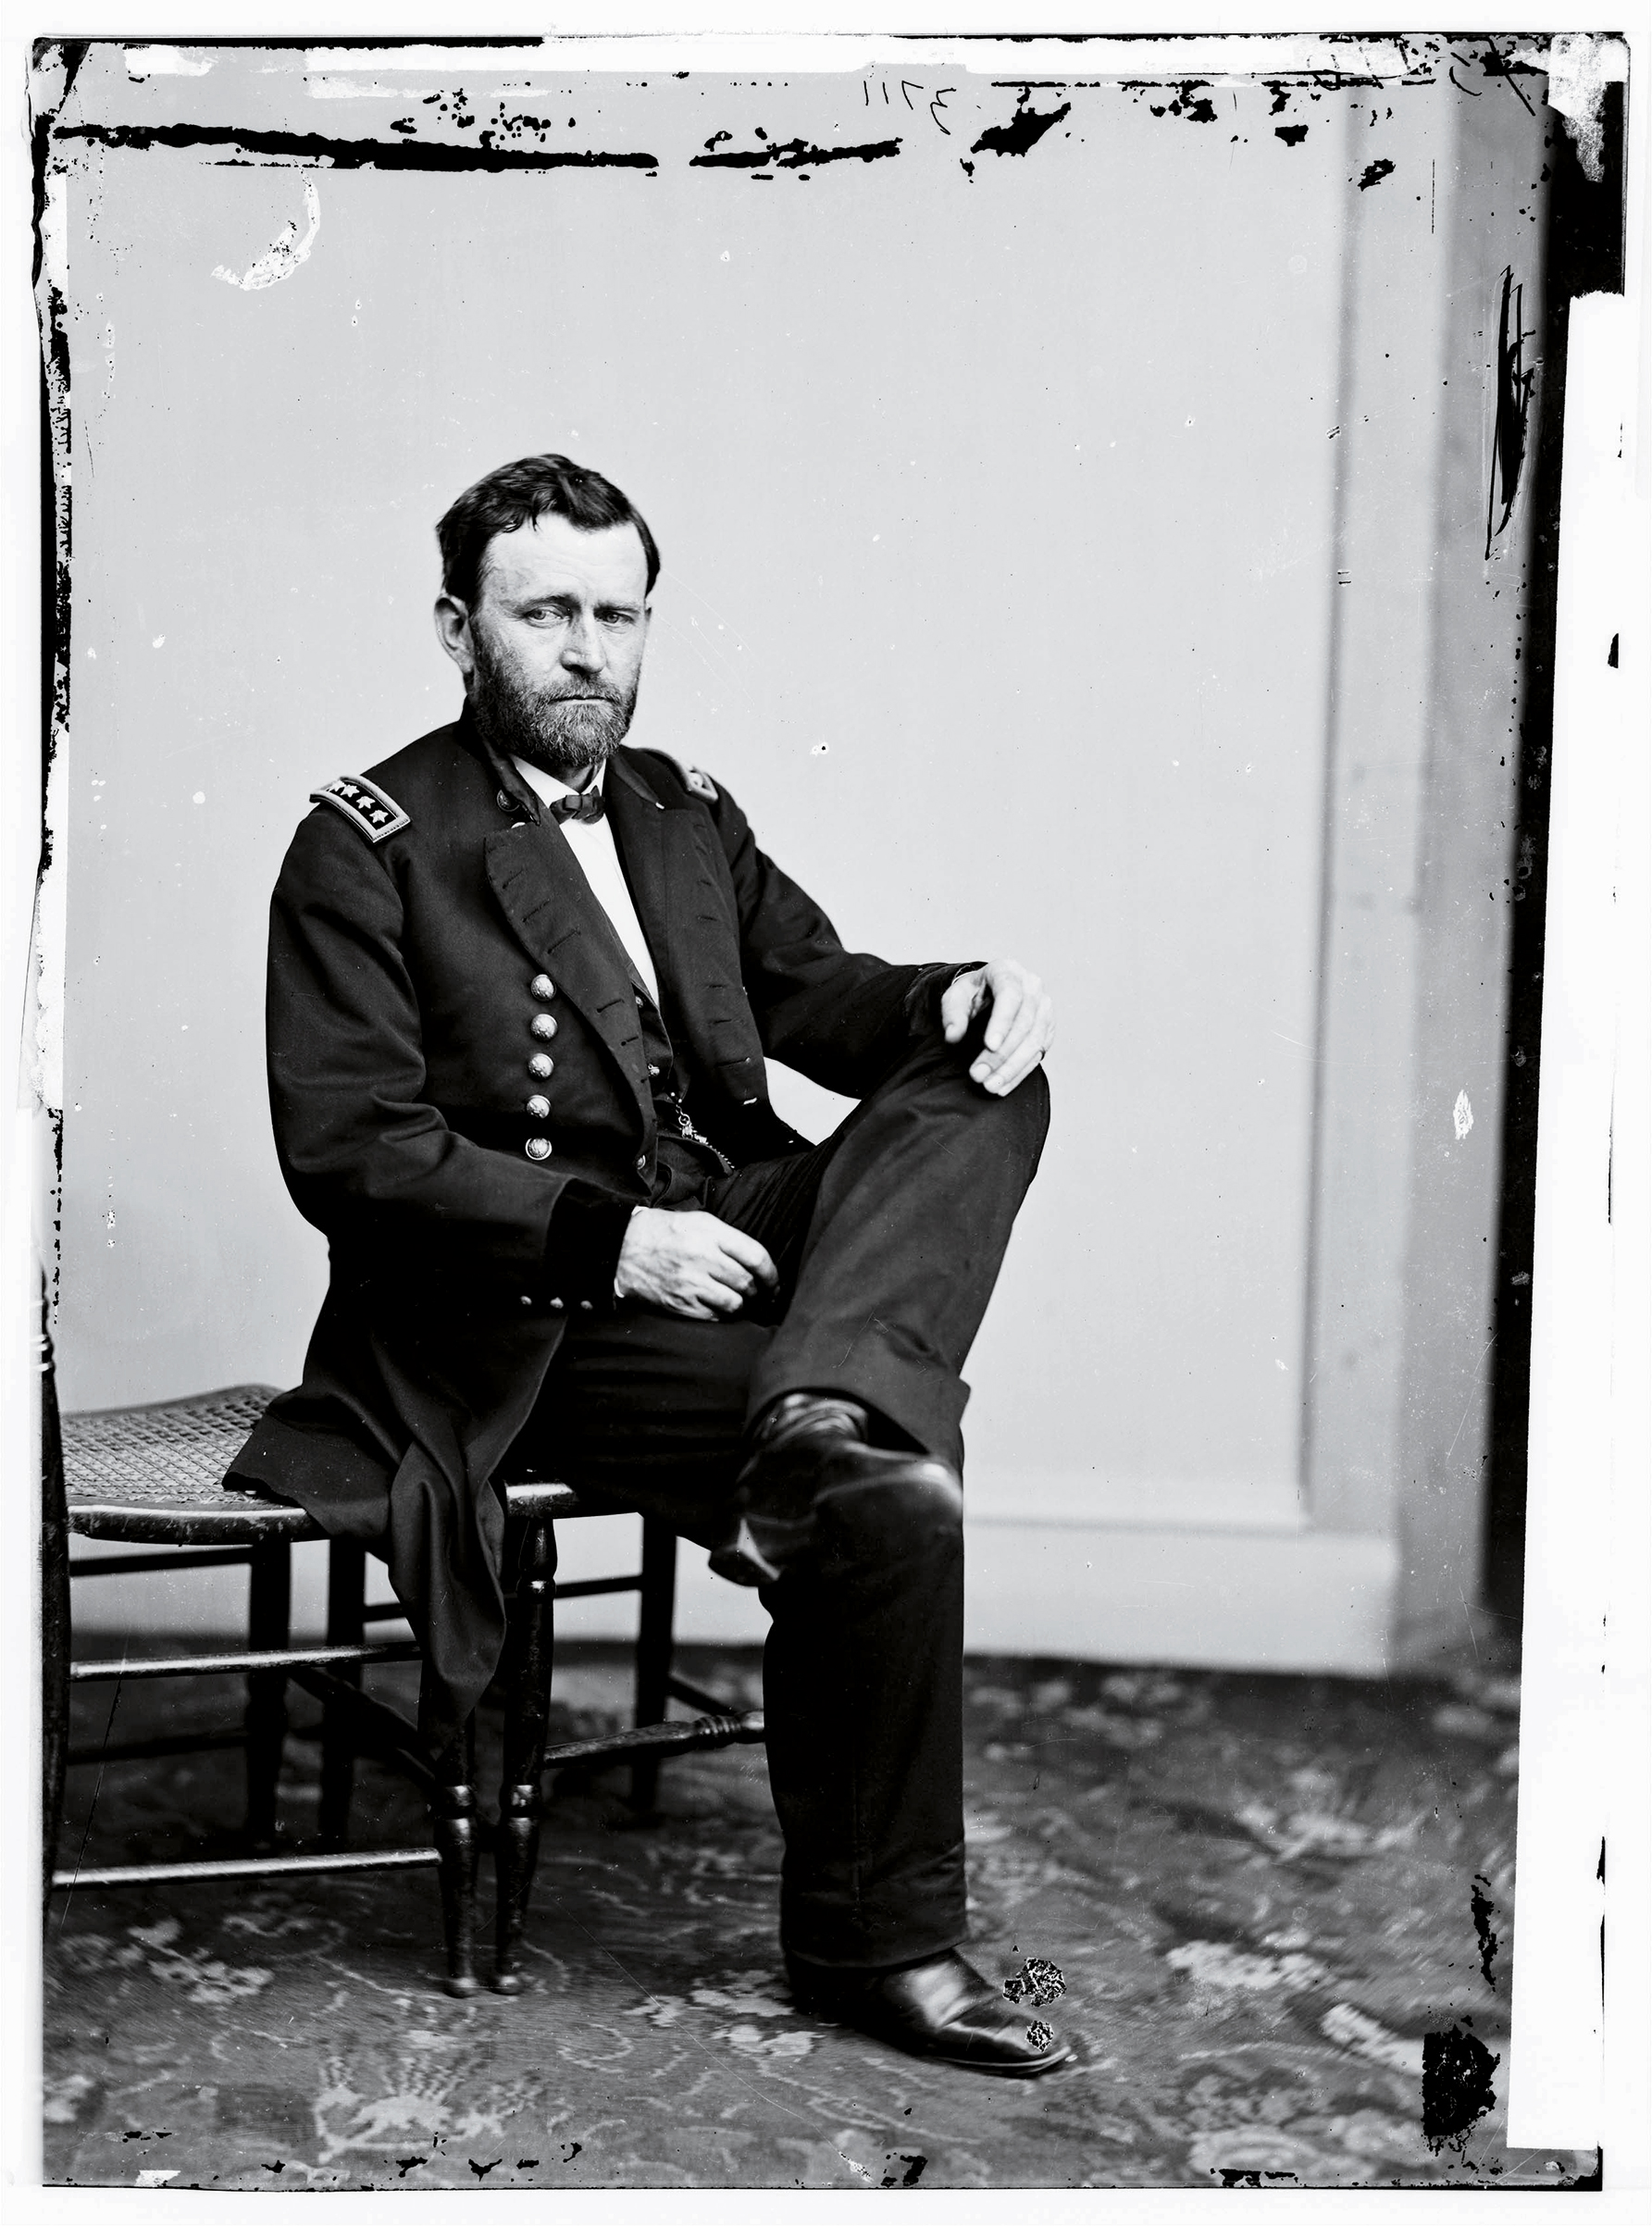 Ulysses S. Grant, circa 1865, before his rise to the White House.